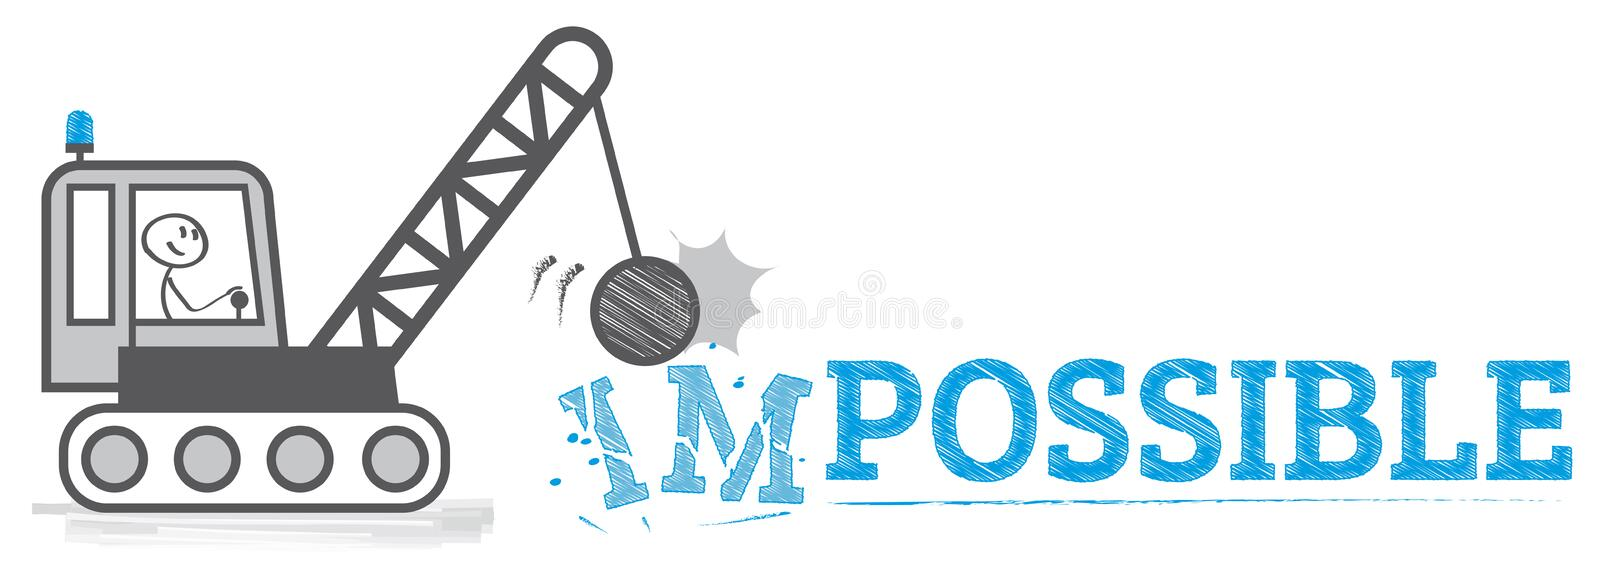 From impossible to possible. Stick figure change impossible to possible text vector illustration